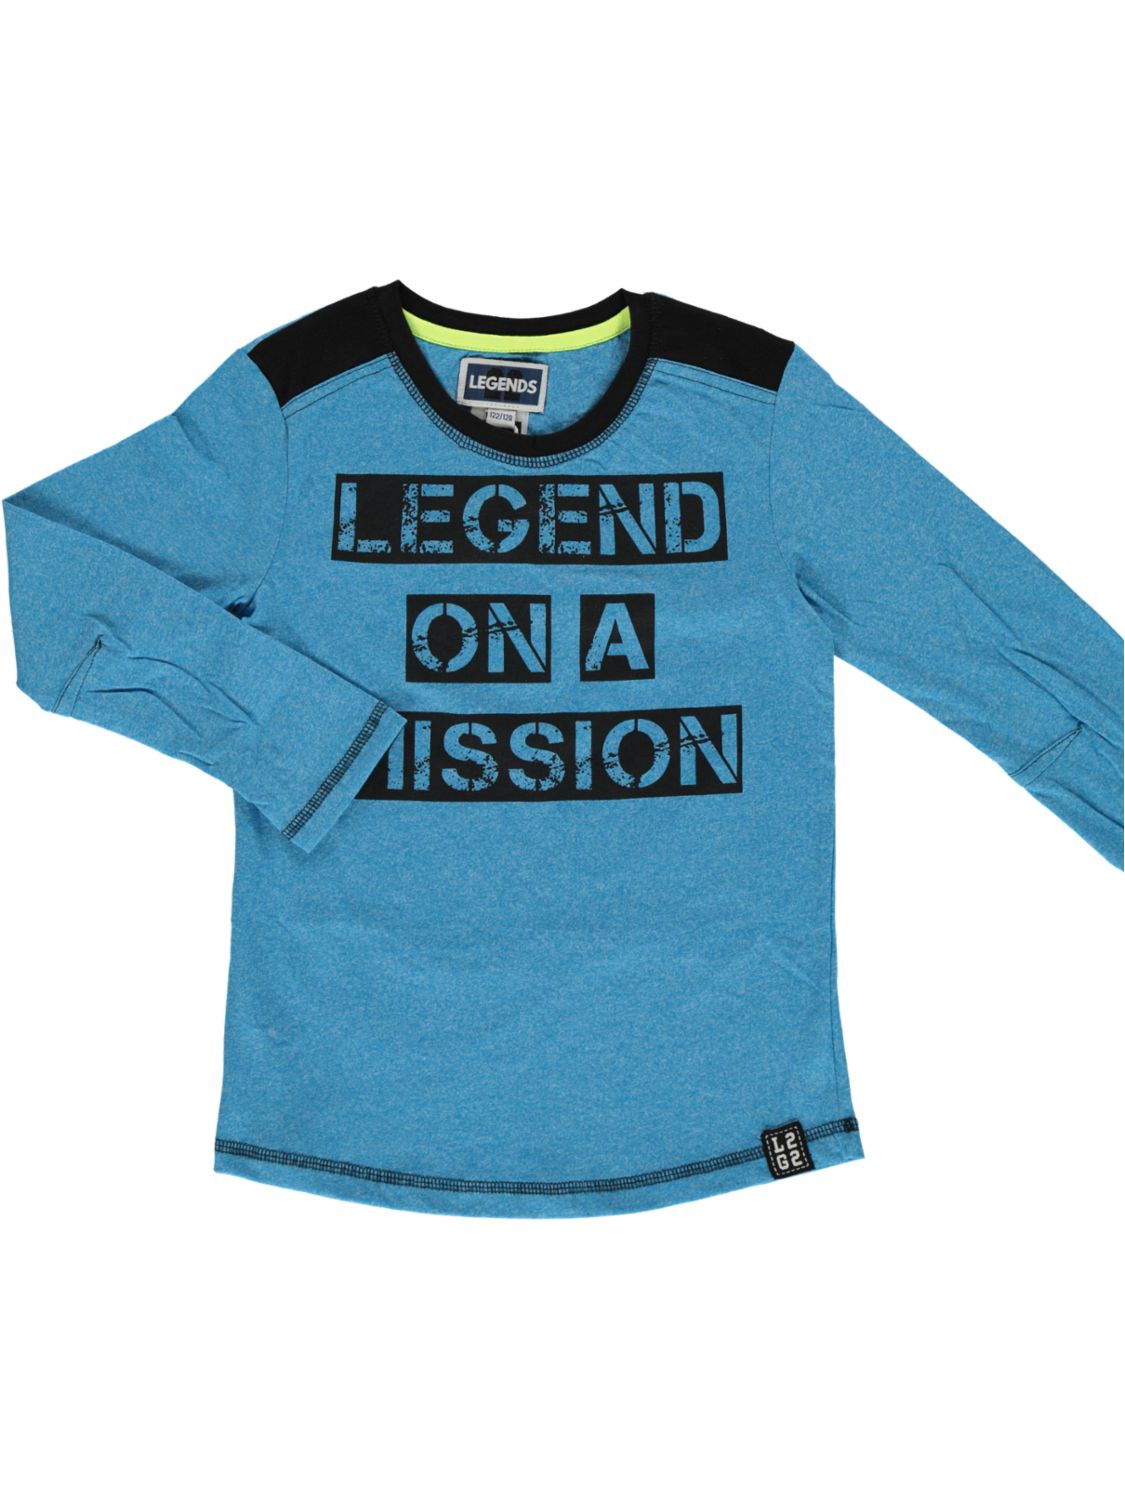 Legends 22 Shirt lange mouw